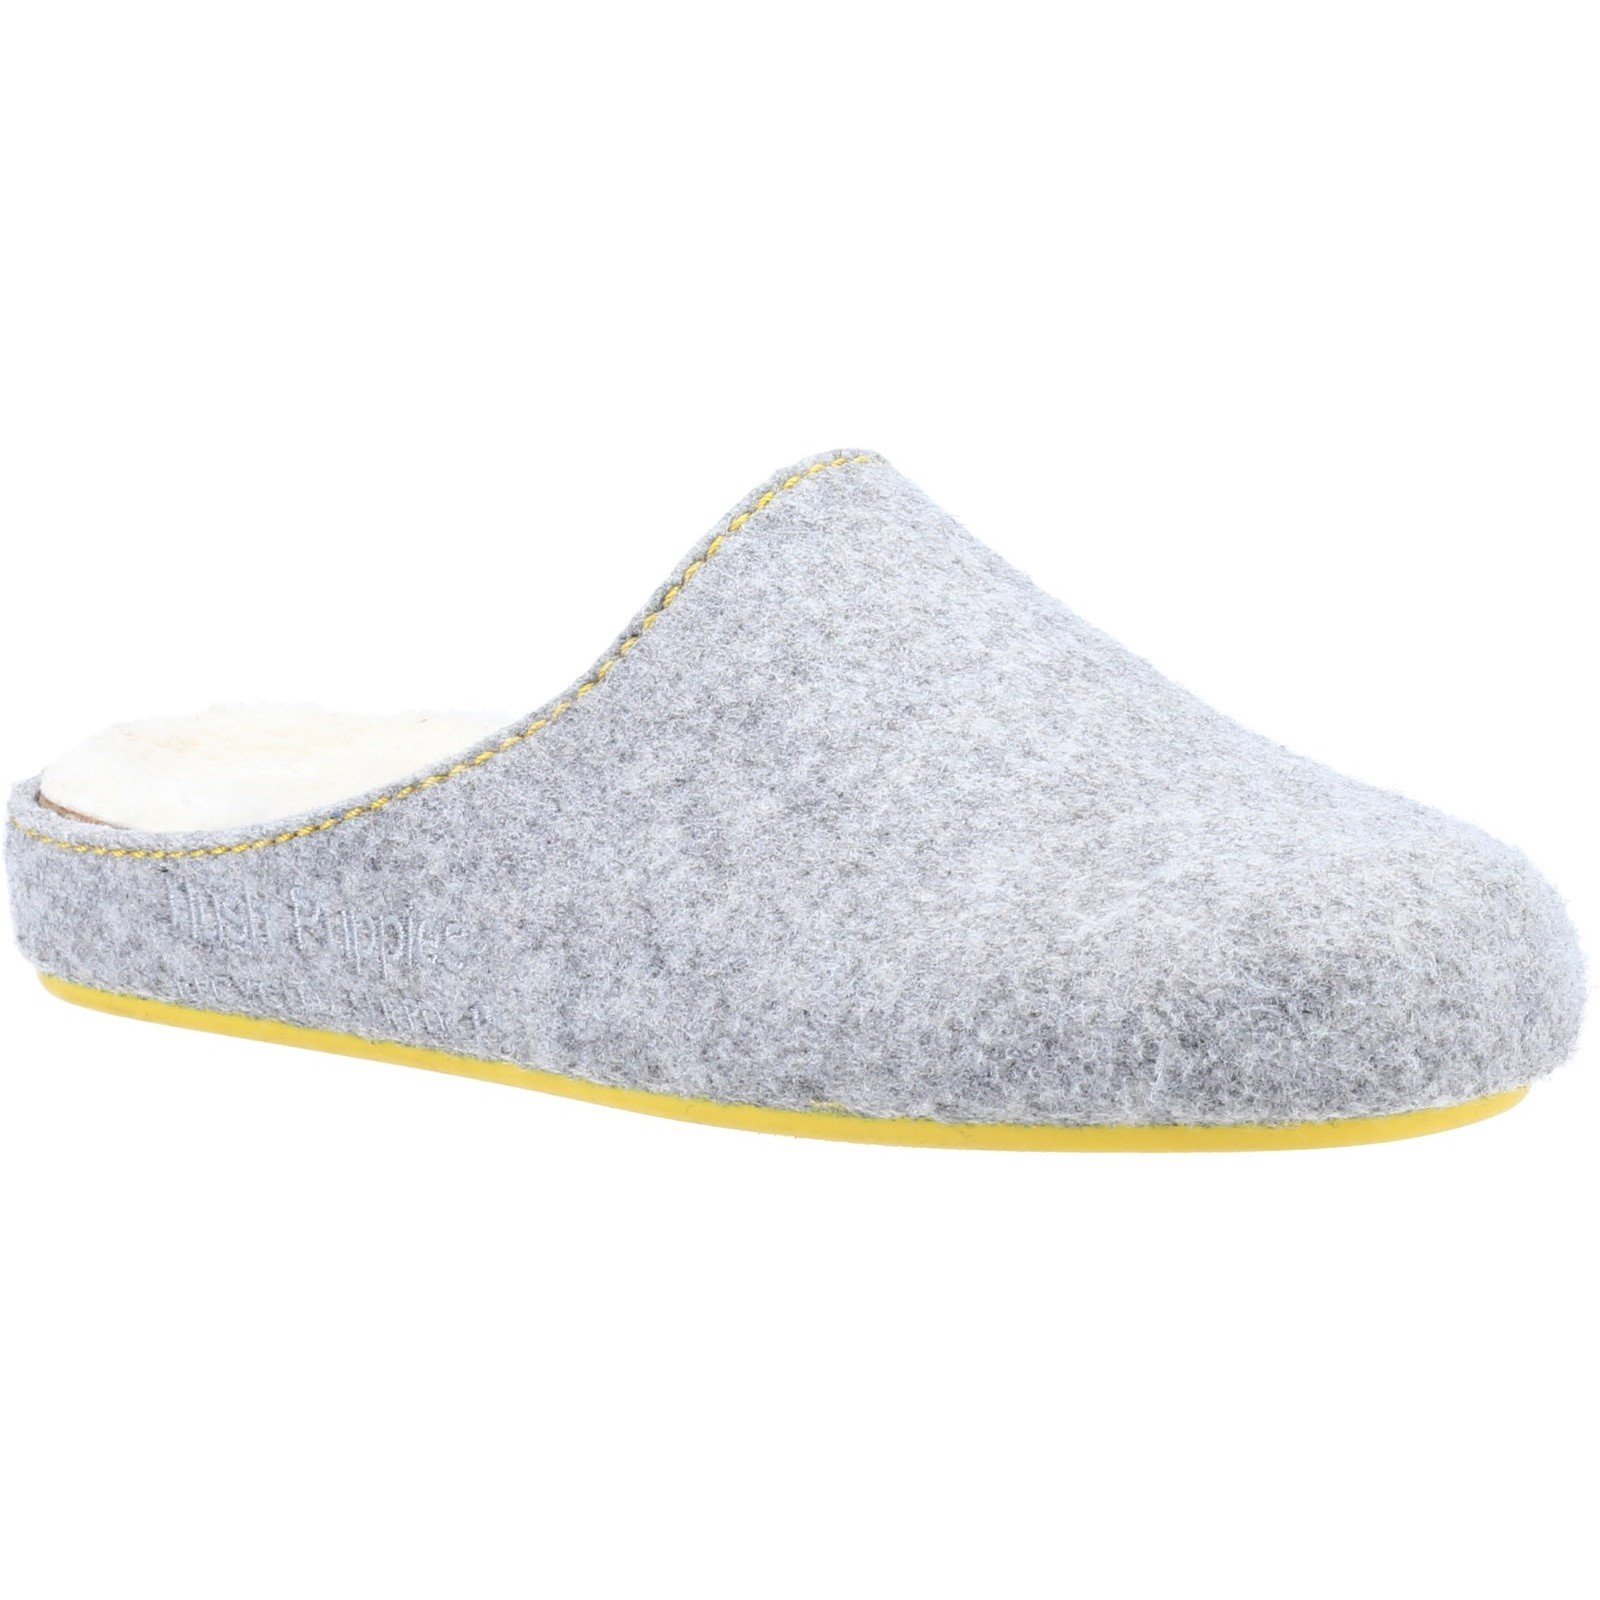 Hush Puppies Women's Remy Slipper Various Colours 32853 - Grey 5